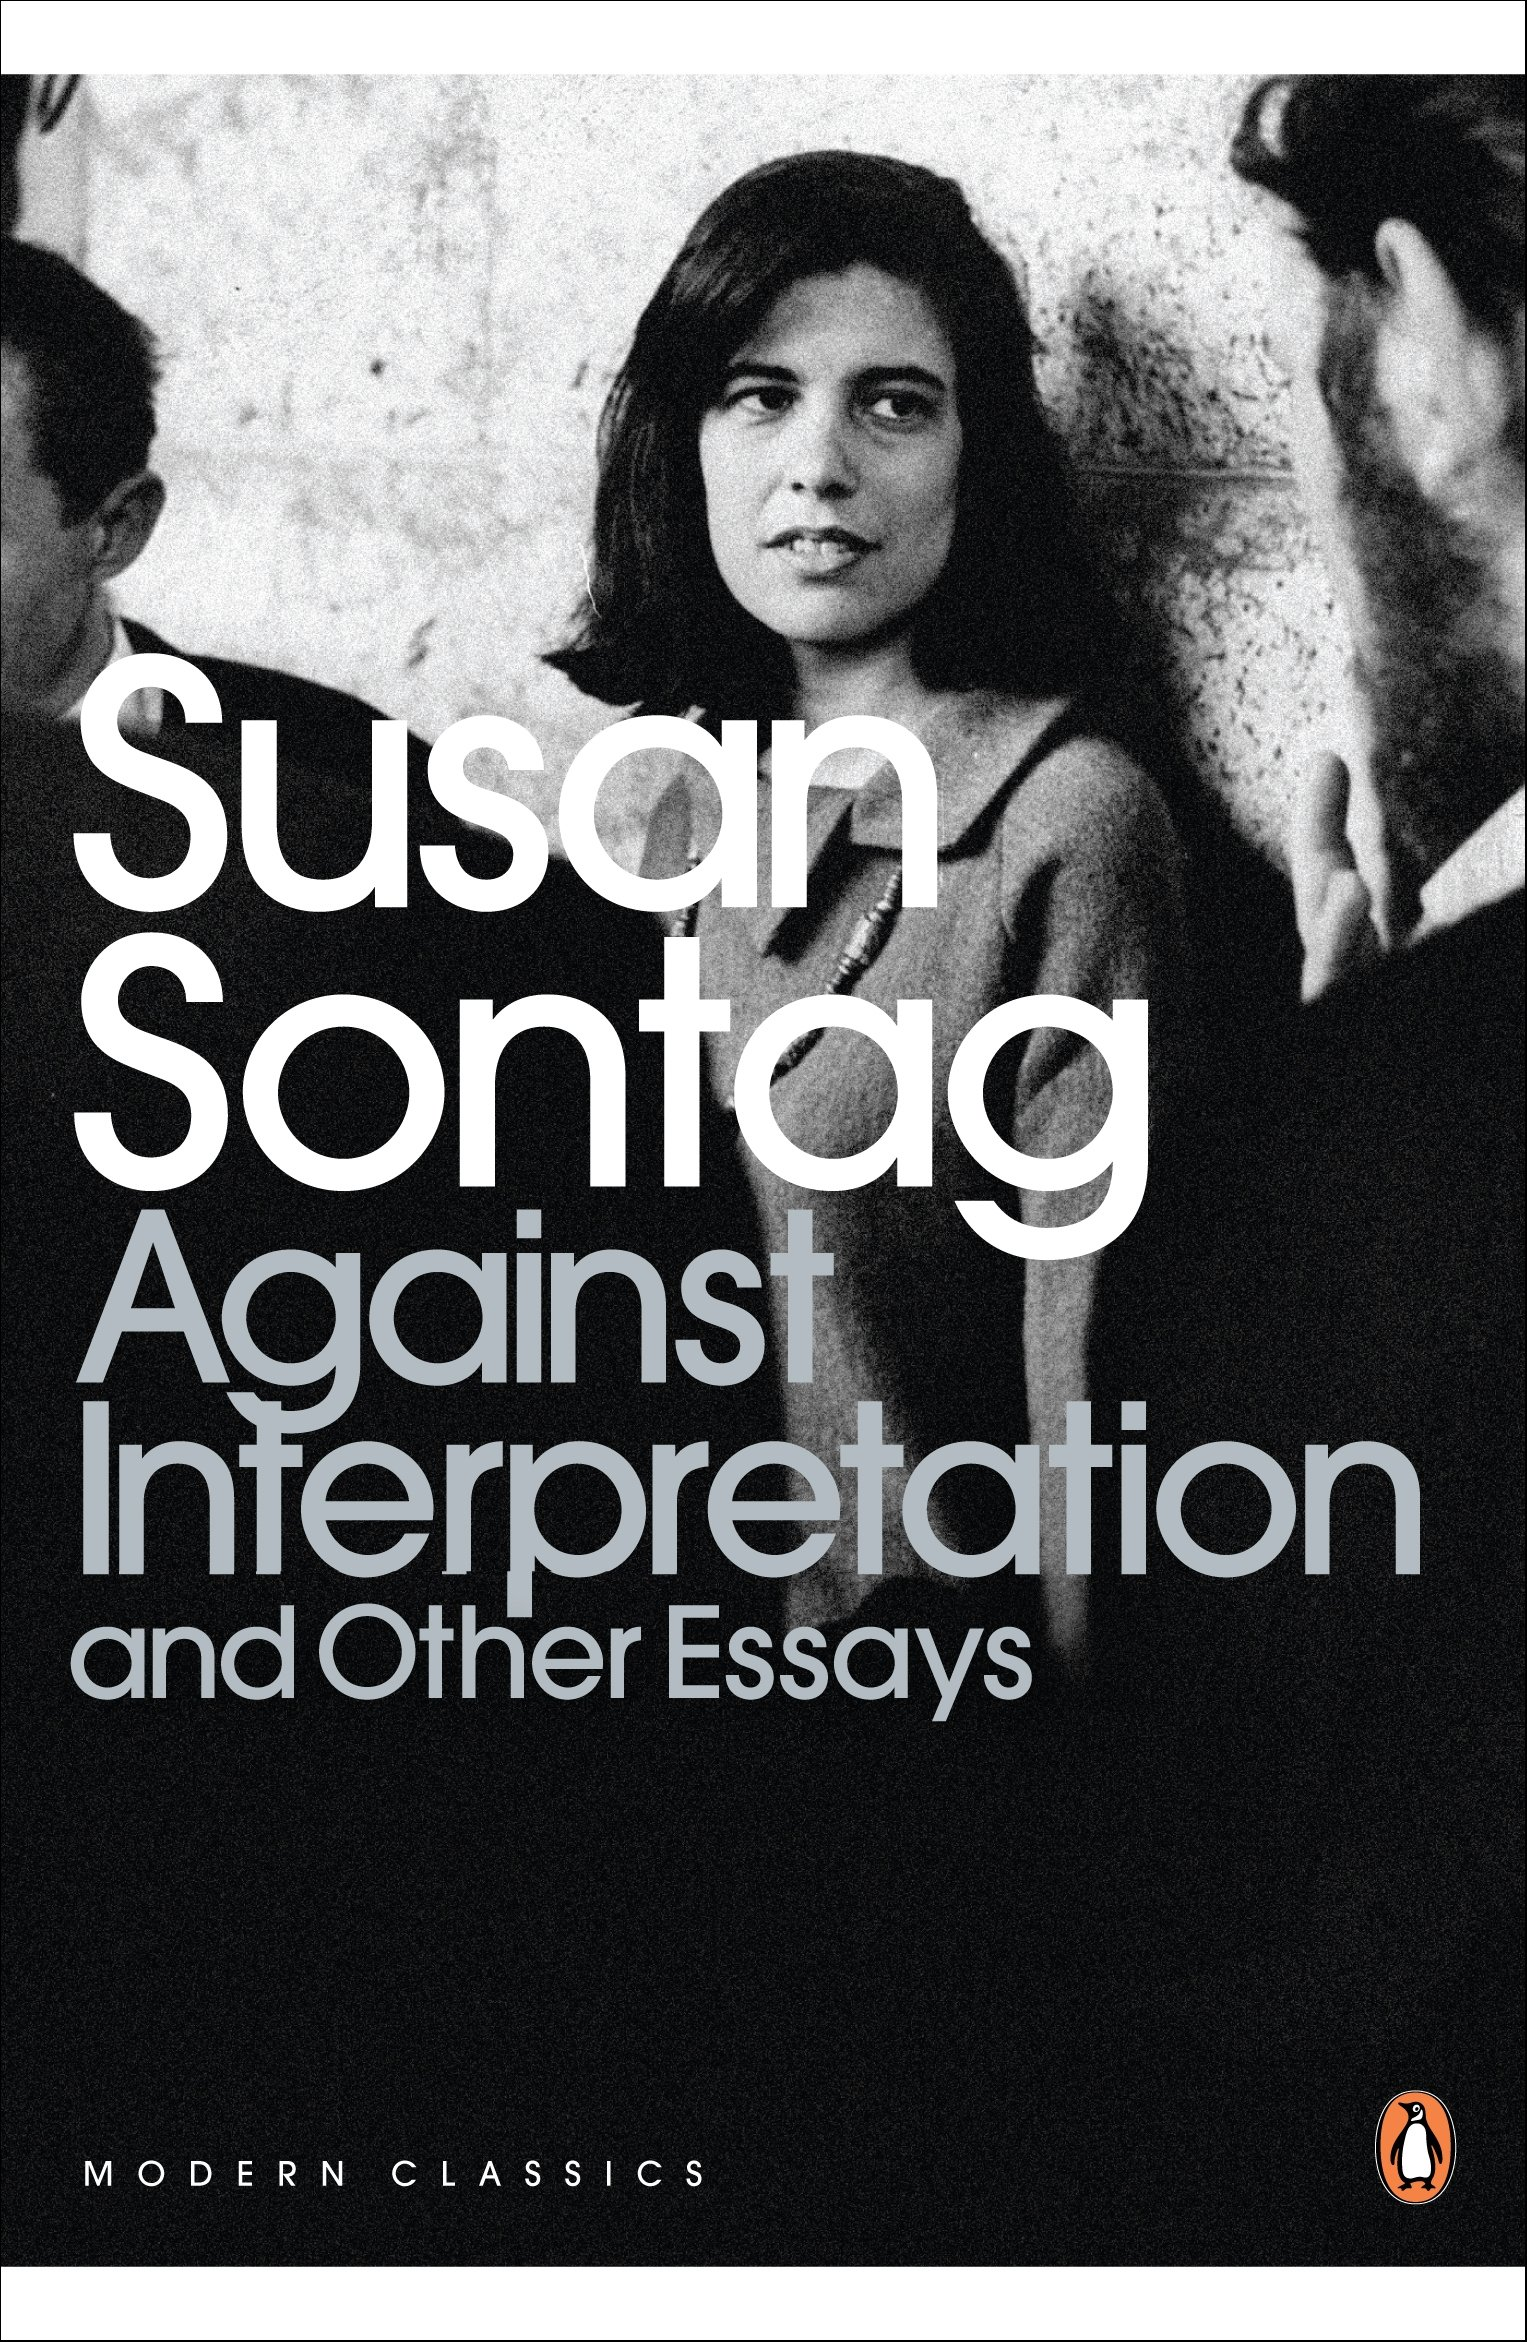 susan sontag essay on photography against interpretation and other  against interpretation and other essays penguin modern classics against interpretation and other essays penguin modern classics